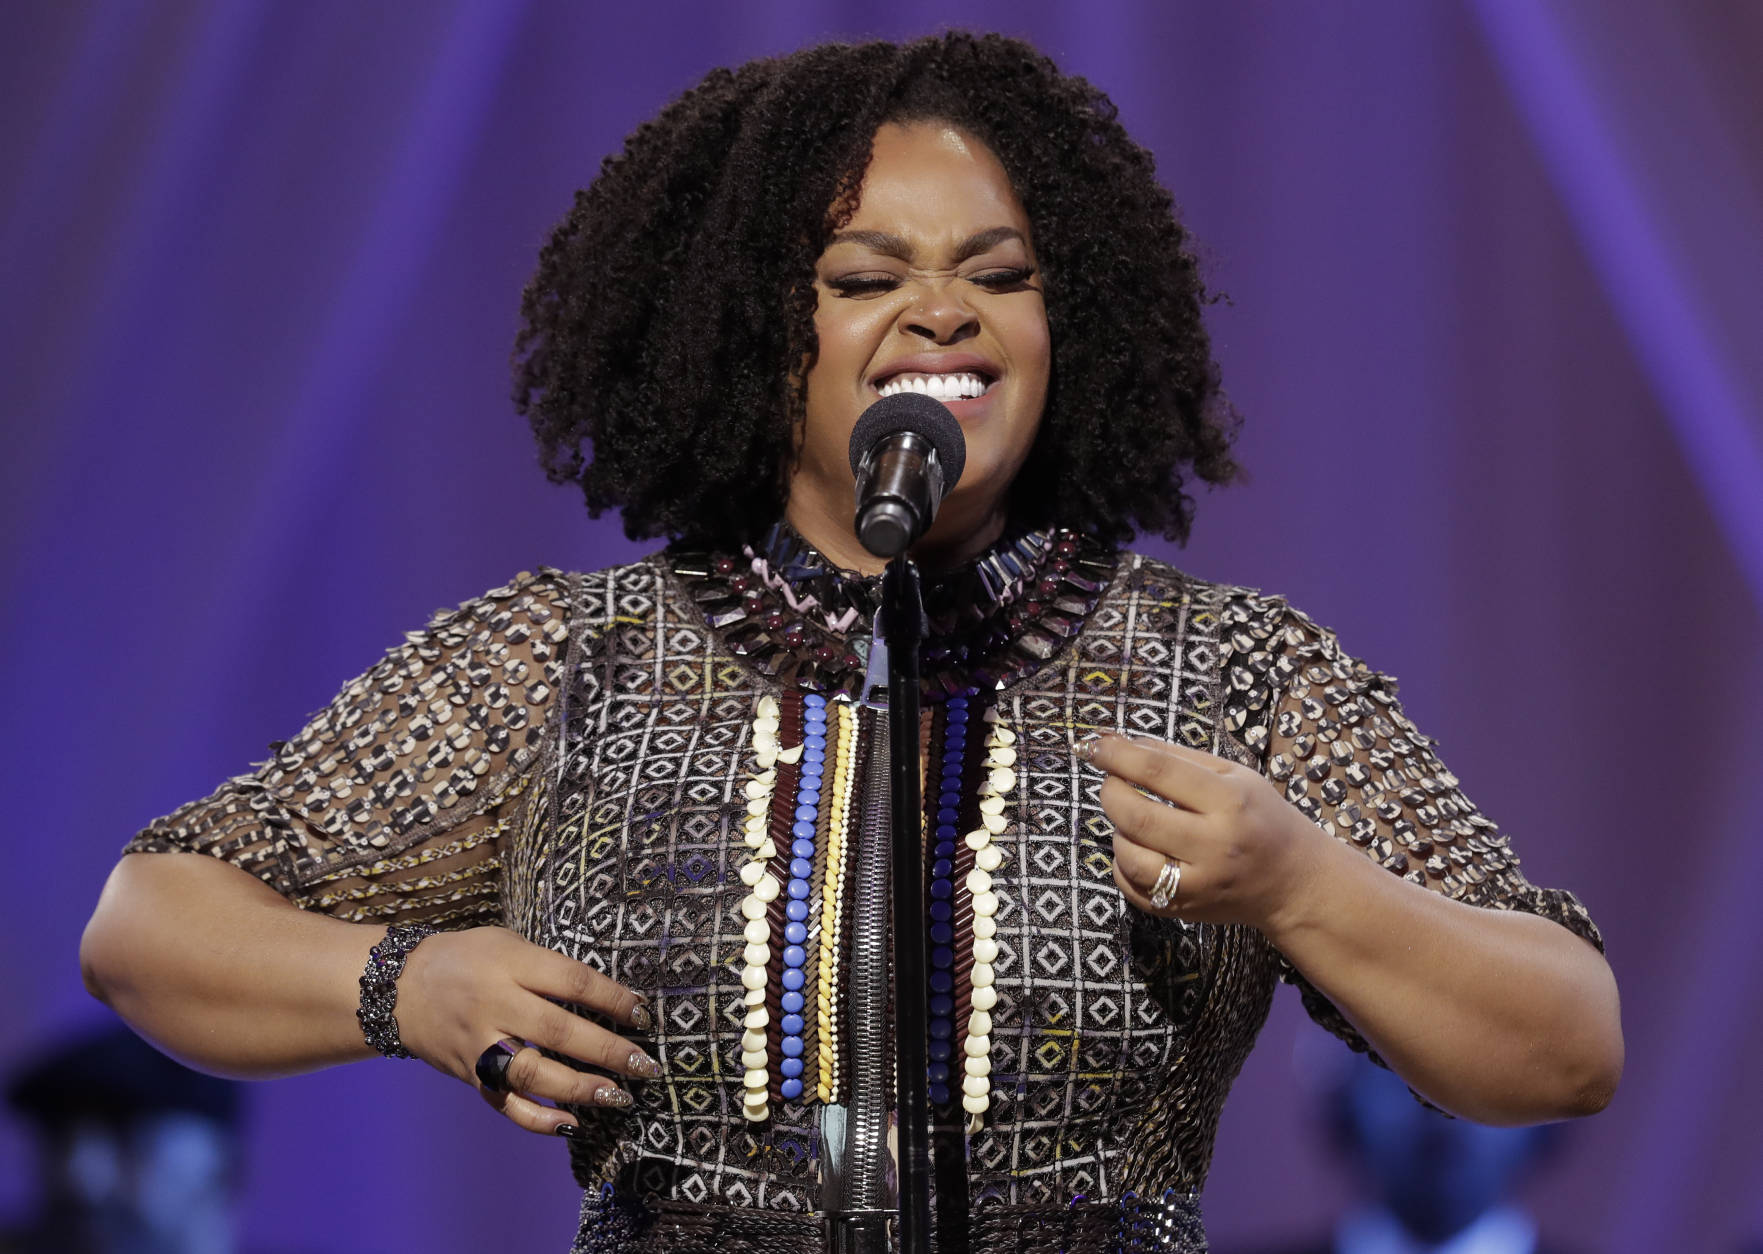 Jill Scott performs at a BET event on the South Lawn of the White House, in Washington, Friday, Oct. 21, 2016. (AP Photo/Carolyn Kaster)